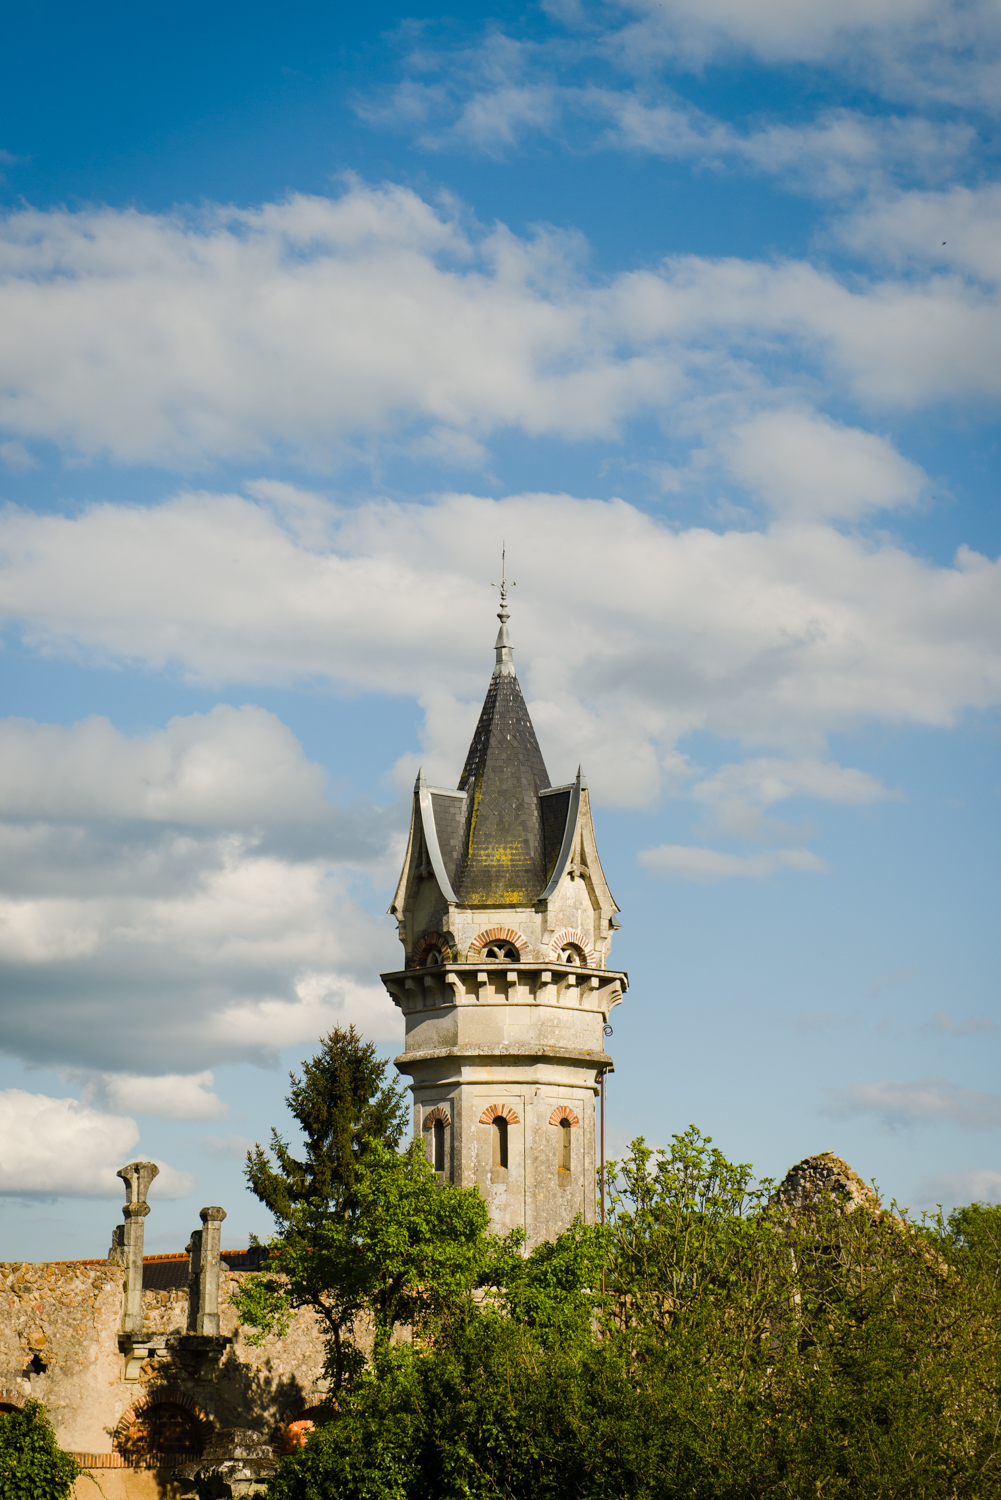 Loire Valley  PHOTOGRAPHY: William Lounsbury • NIKON D800 • AF-S NIKKOR 24-70MM F/2.8G ED @ 70MM • Ƒ/8 • 1/640 • ISO 200